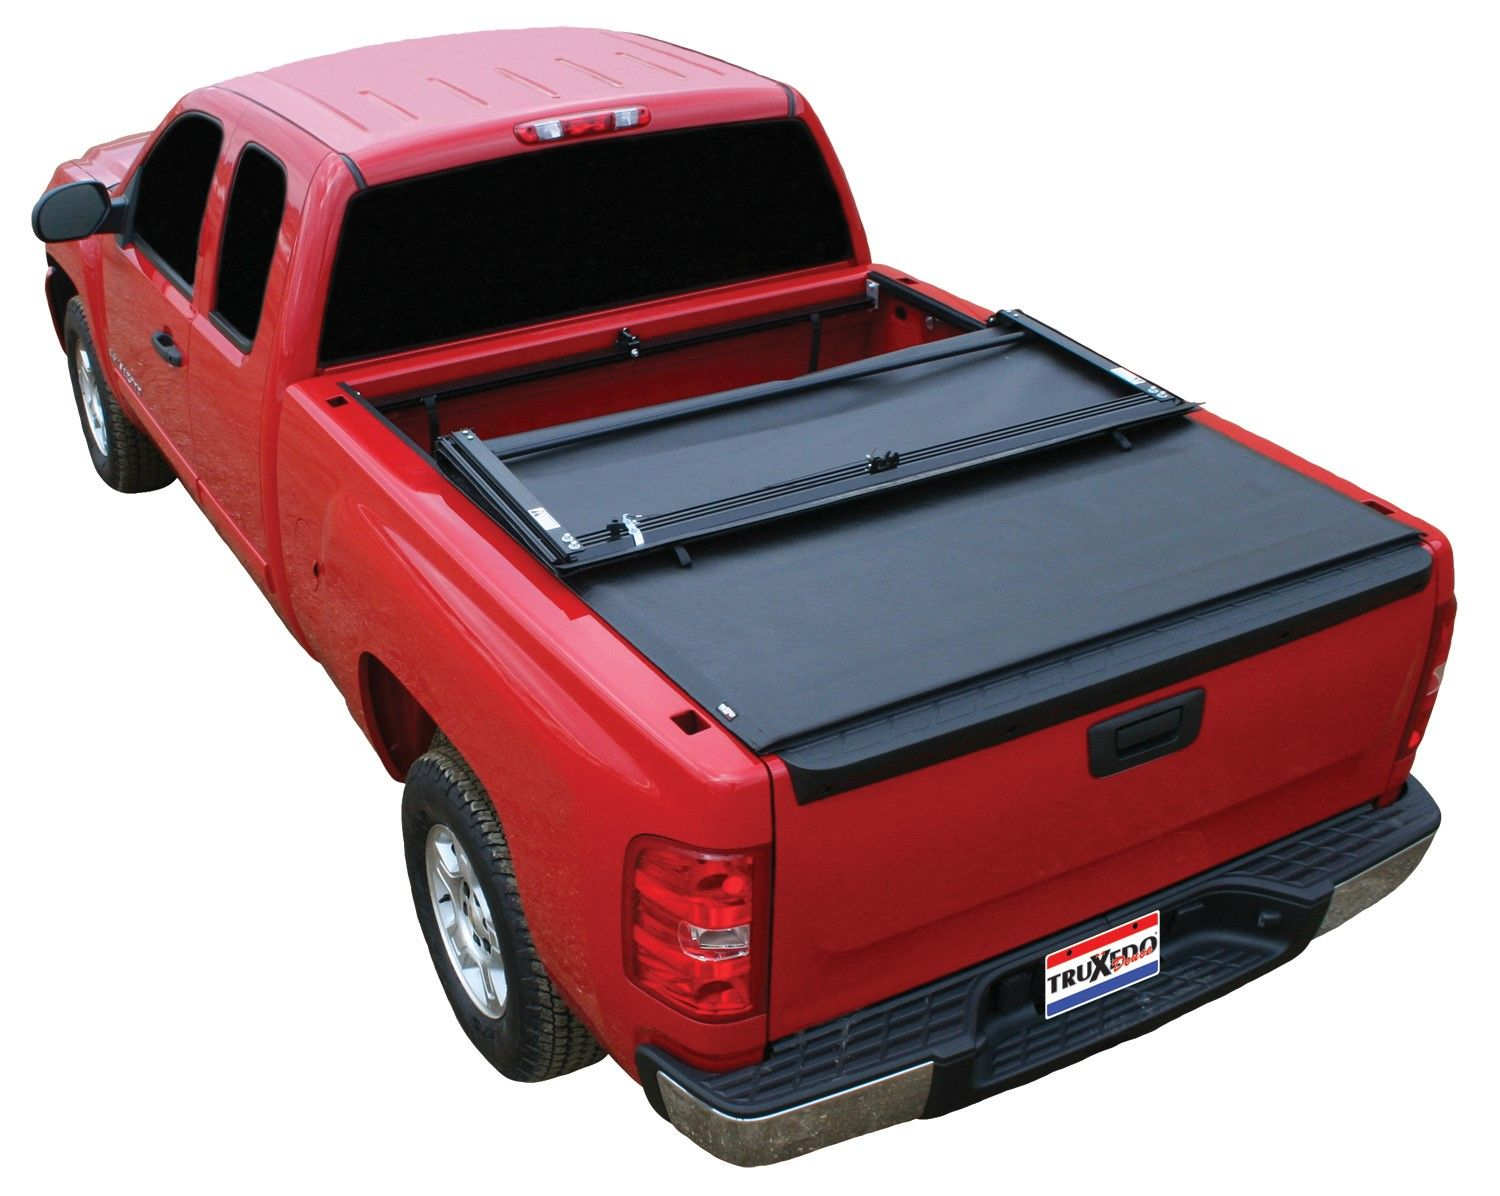 Pin by StreetsideAuto on Truxedo Tonneau cover, Truck